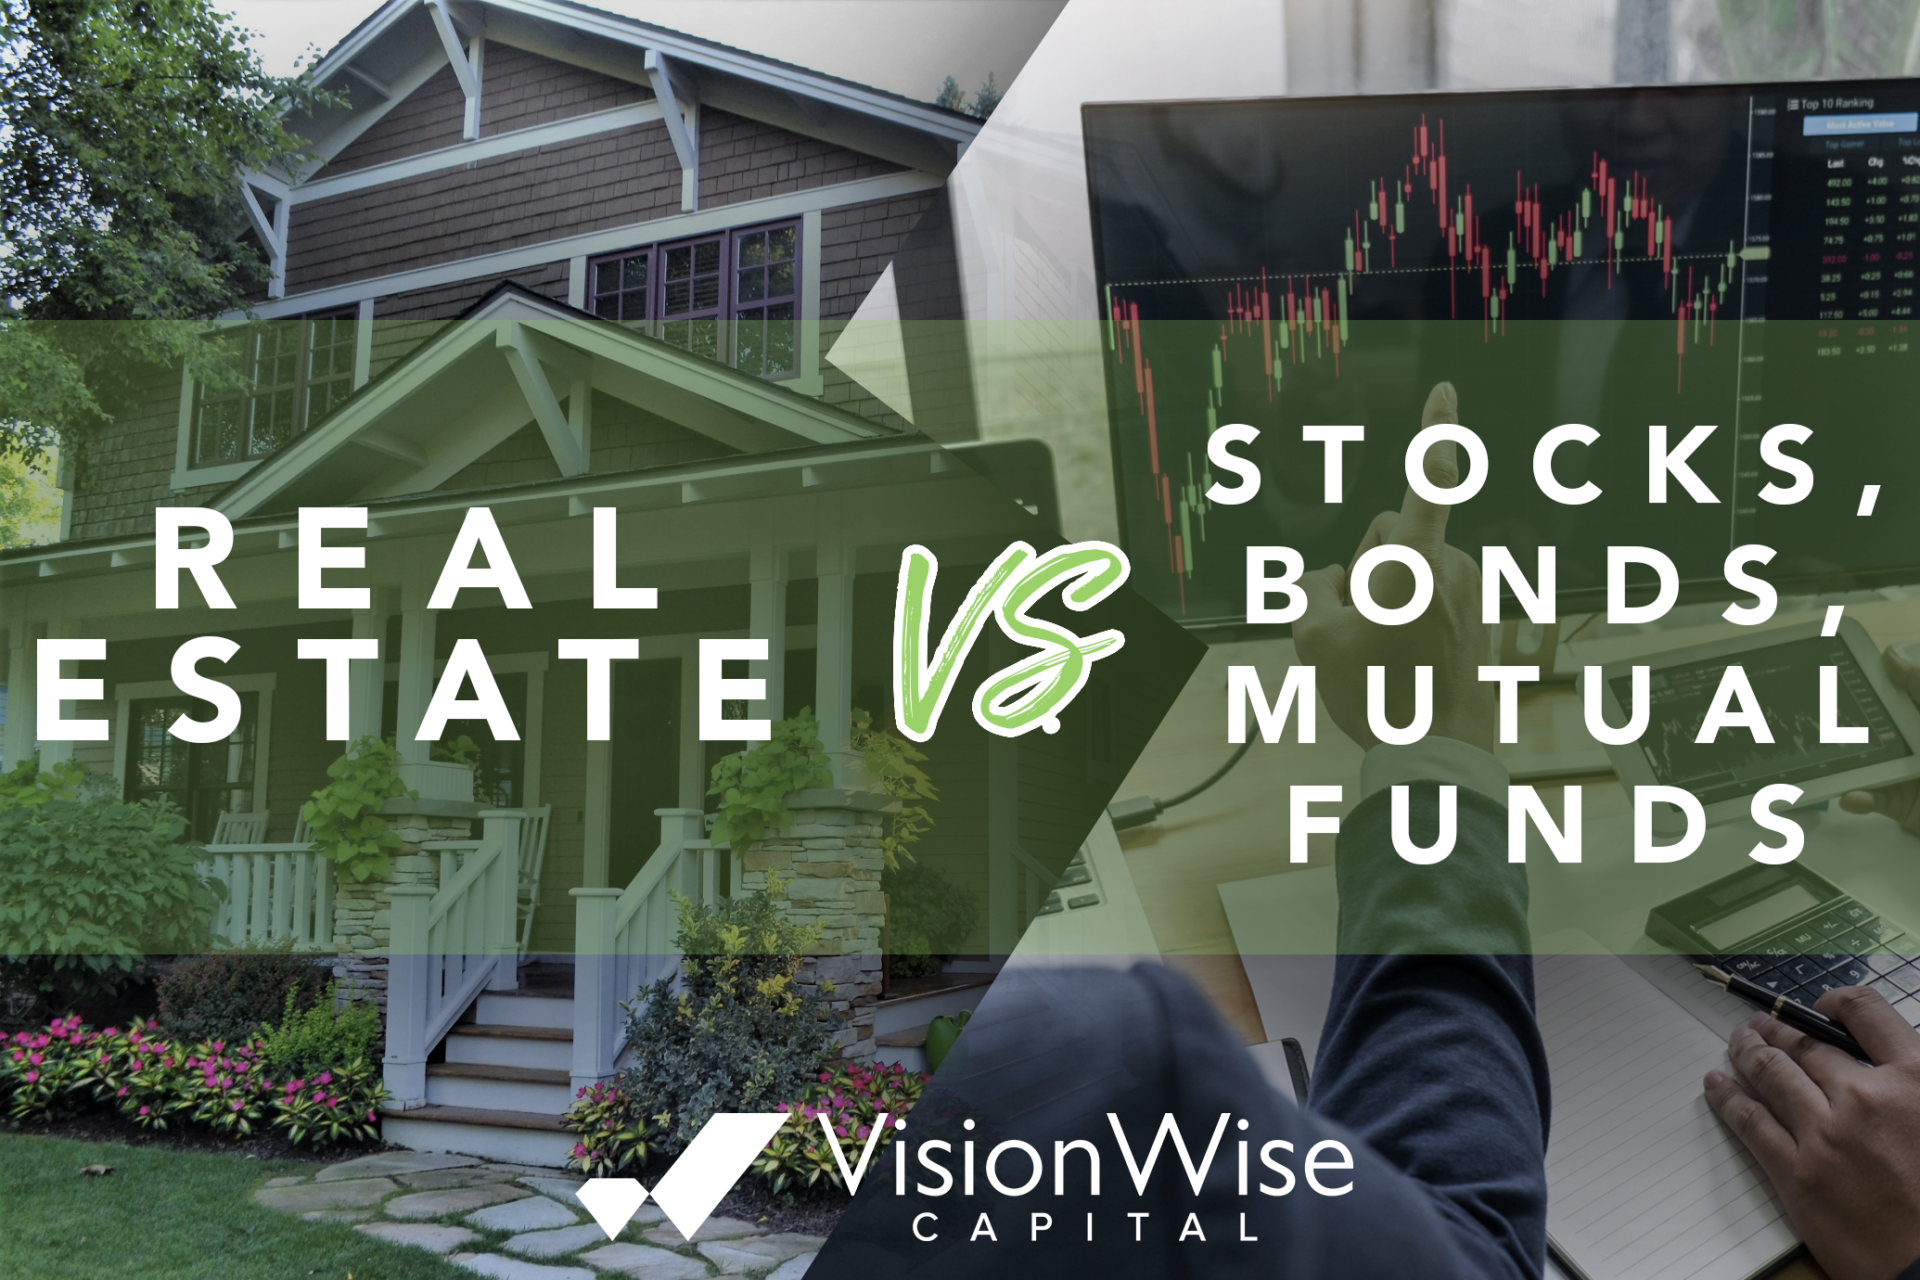 Real Estate vs. Stocks, Bonds, and Mutual Funds?